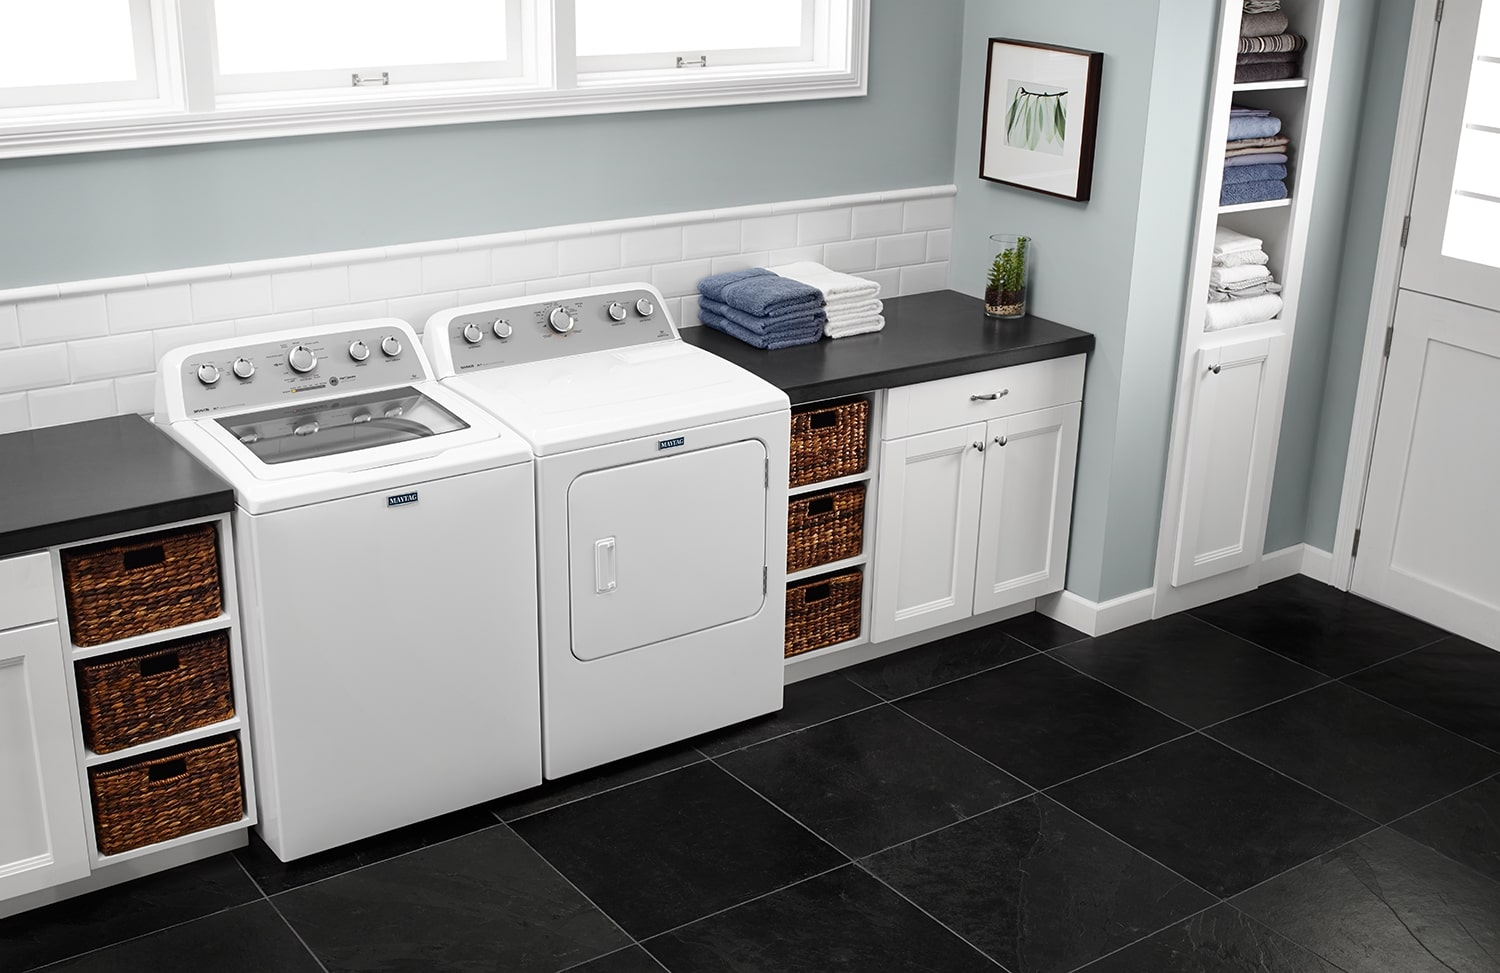 Maytag Bravos 174 5 0 Cu Ft Top Load Washer And 7 0 Cu Ft